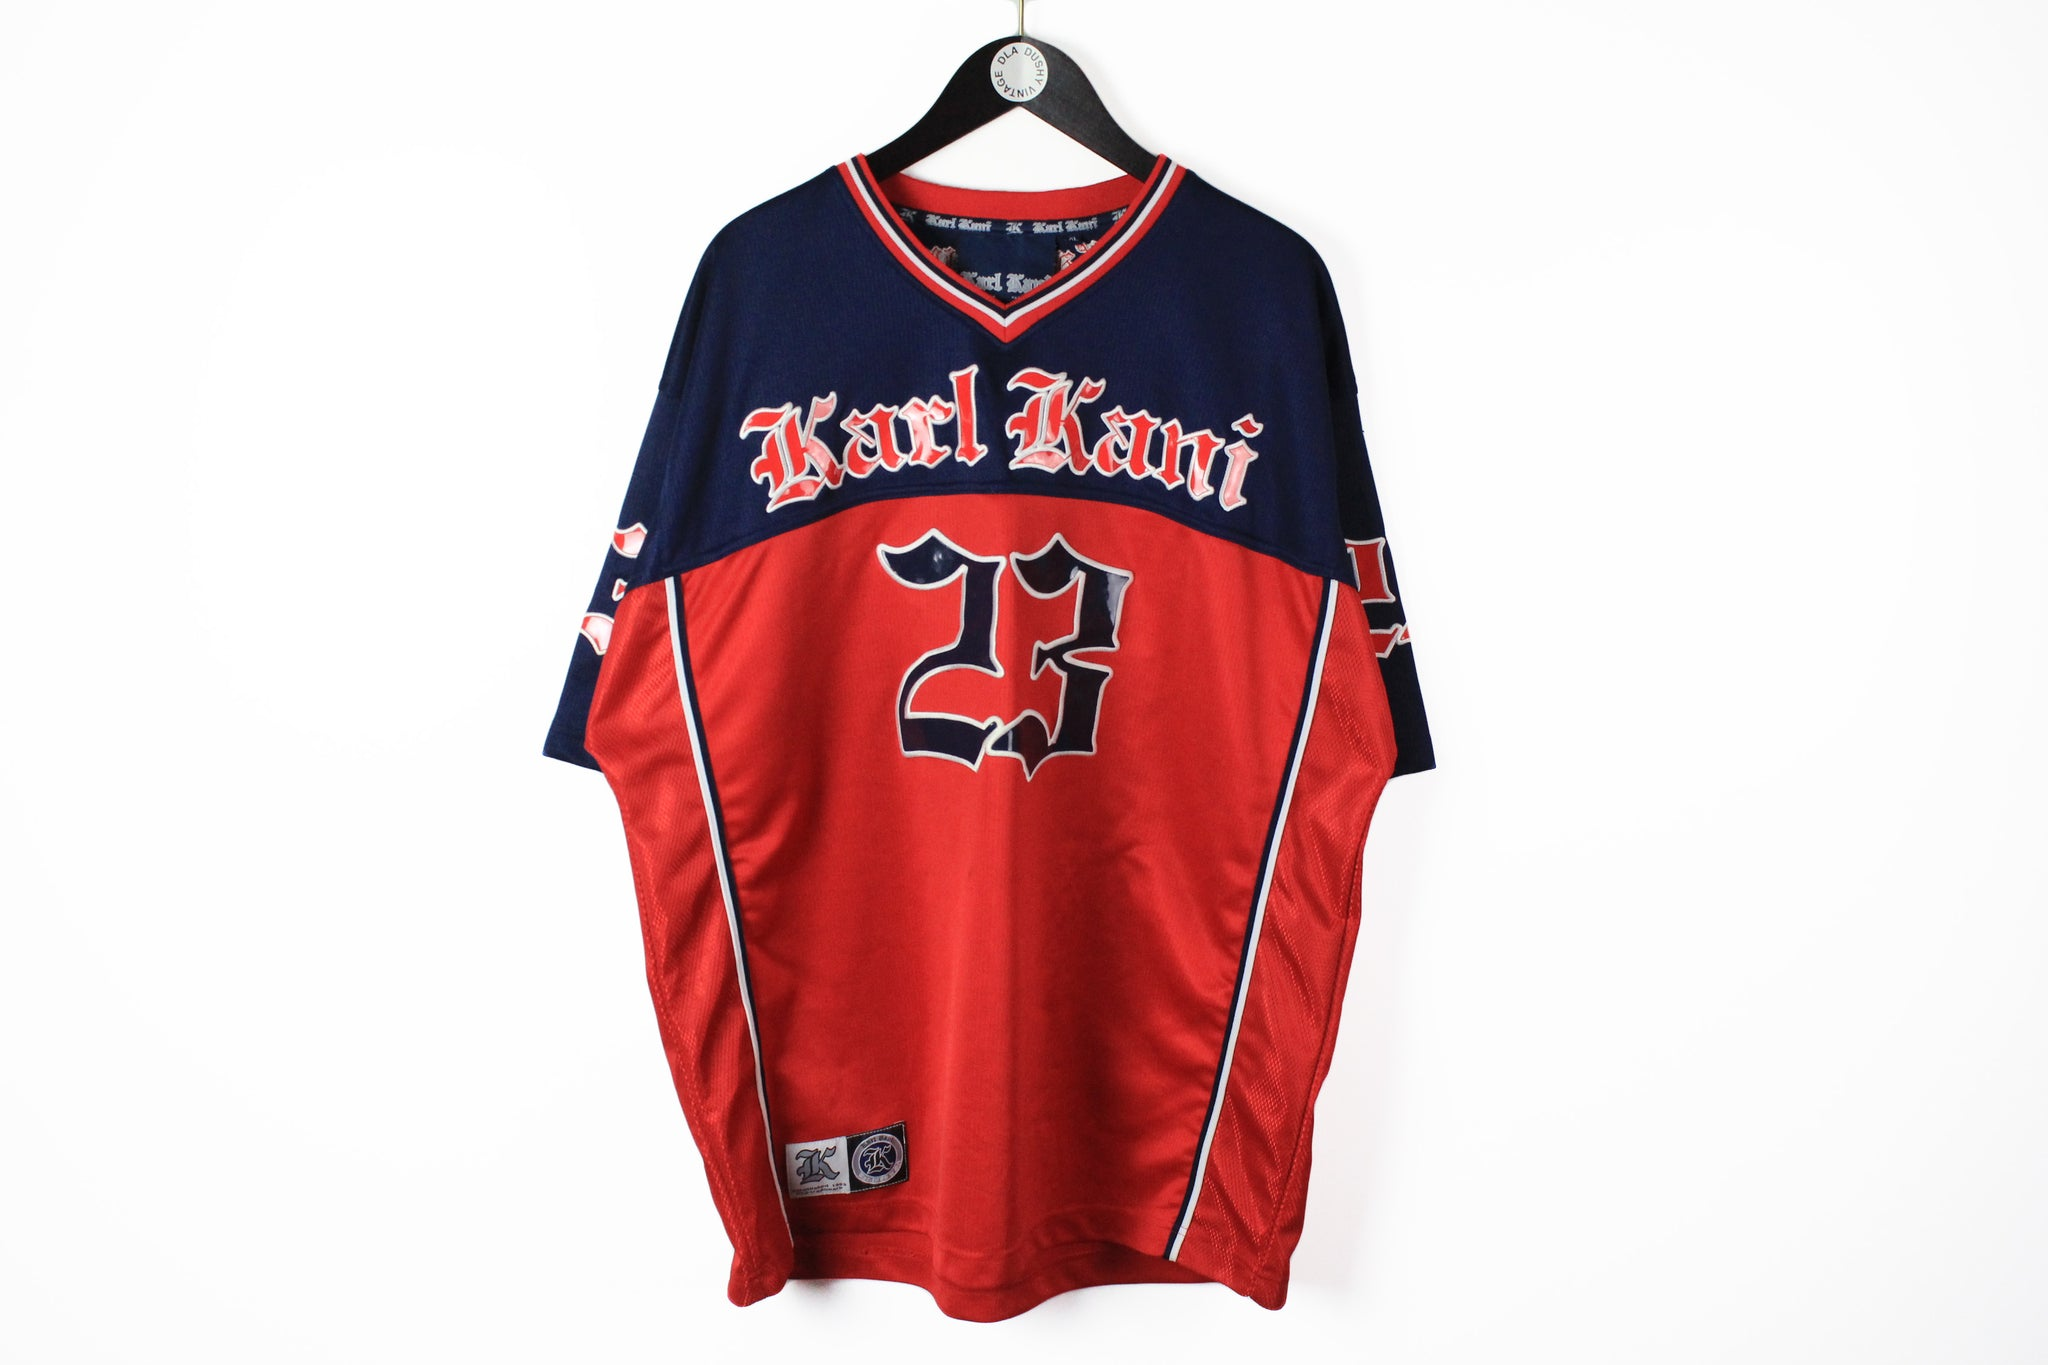 Vintage Karl Kani T-Shirt XLarge big logo 90s sport 23 Brooklyn style red blue jersey hip hop tee